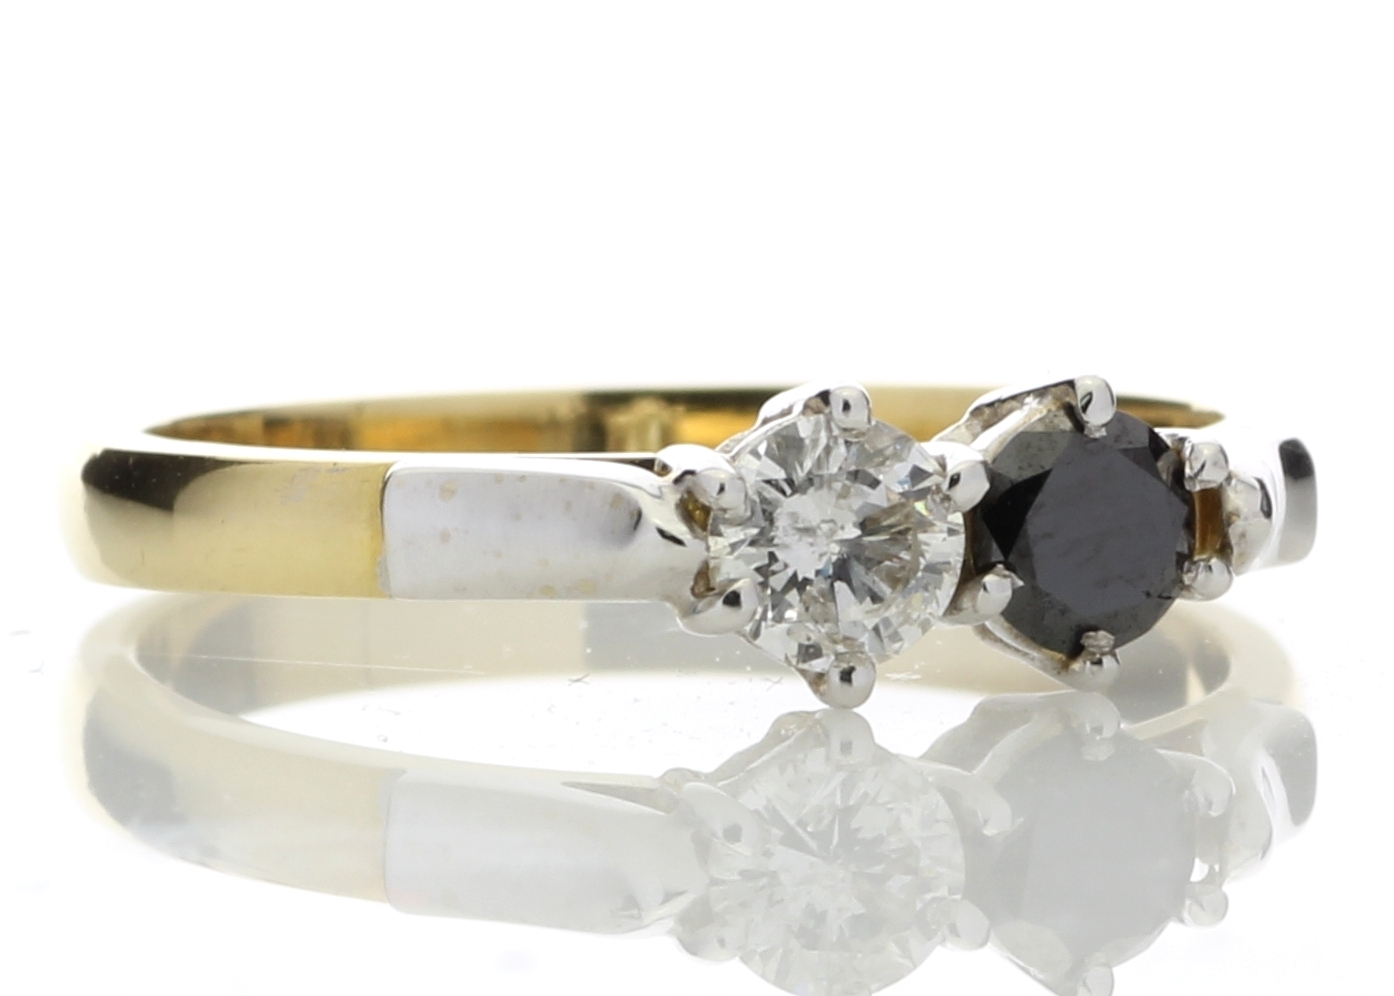 18k Two Stone Claw Set Diamond With Black Treated Stone Ring 0.50 Carats - Image 4 of 4